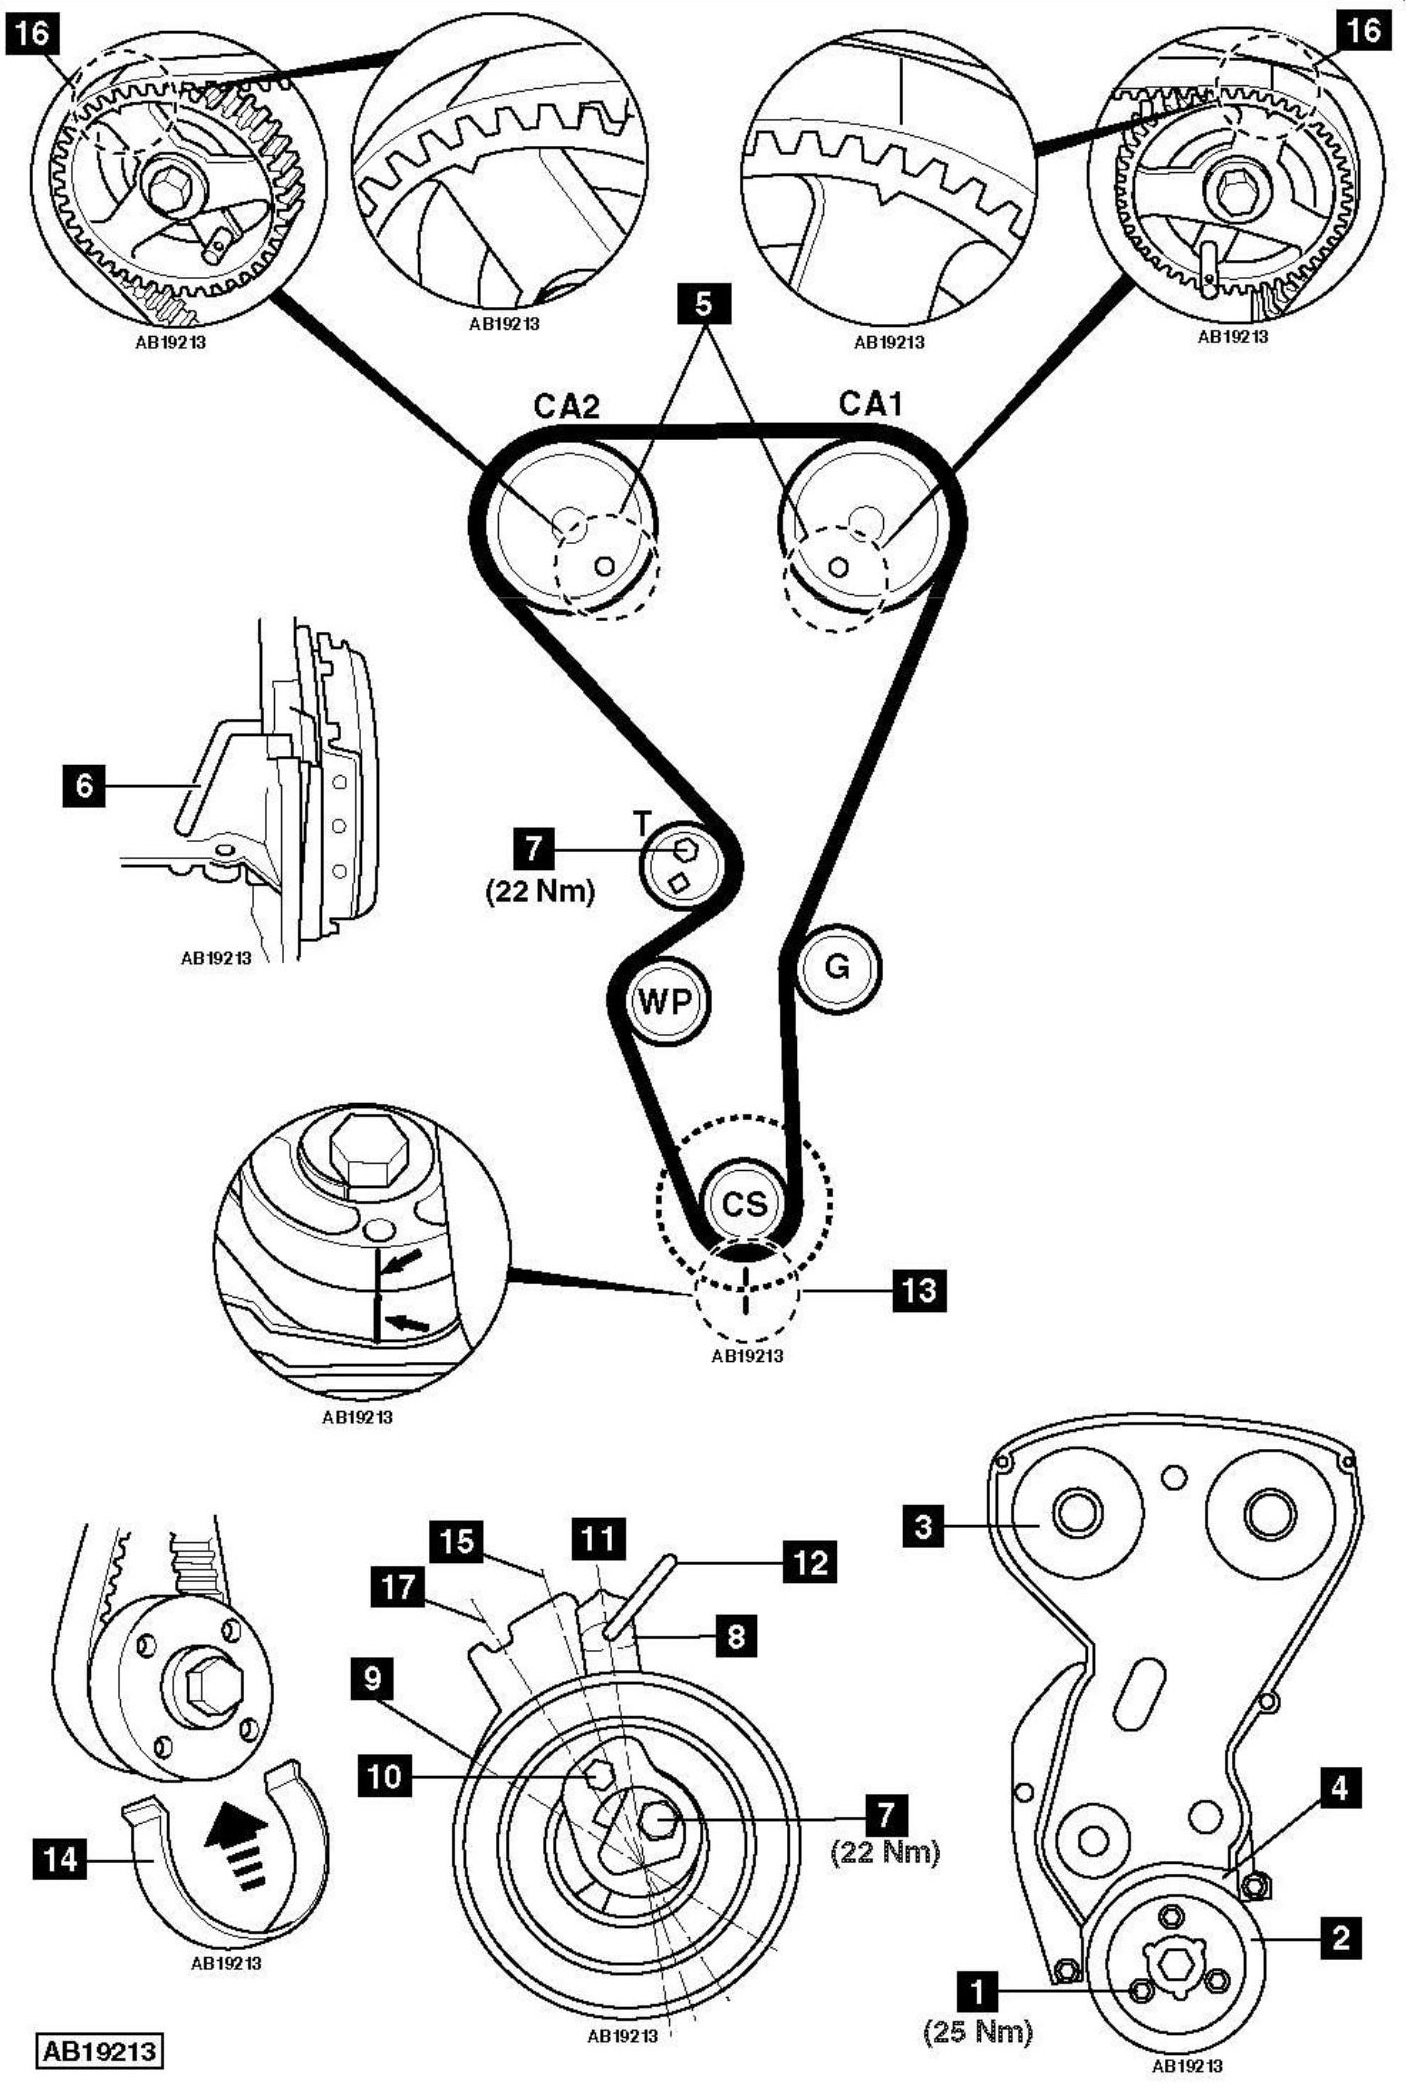 hight resolution of how to replace timing belt on peugeot 206 1 6 2003 peugeot need full diagram of timing belt procedure for peugeot car